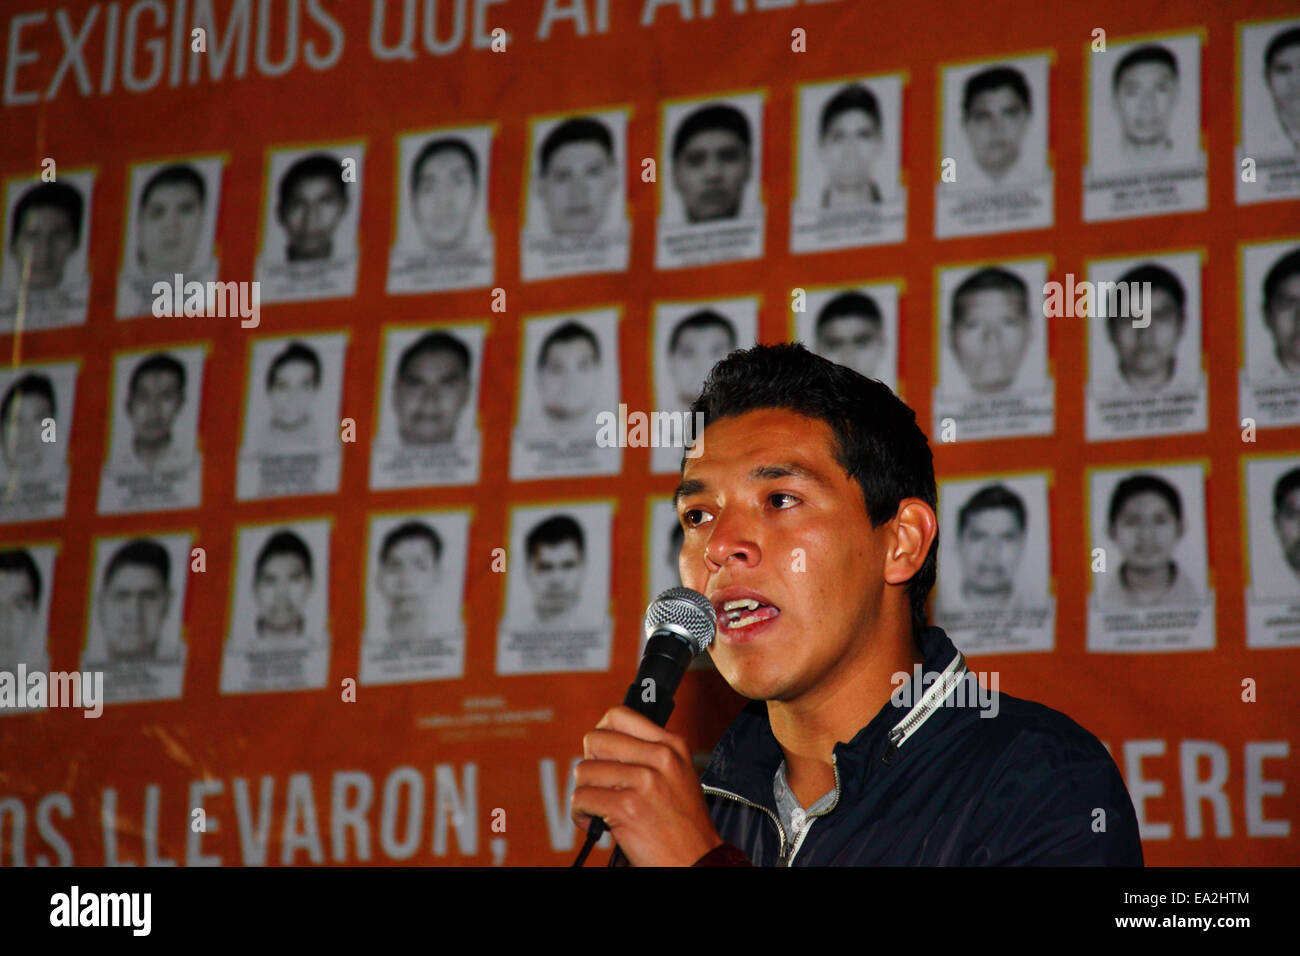 LA PAZ, BOLIVIA, 5th November 2014. A student leader speaks at an event organised to show solidarity with the 43 - Stock Image